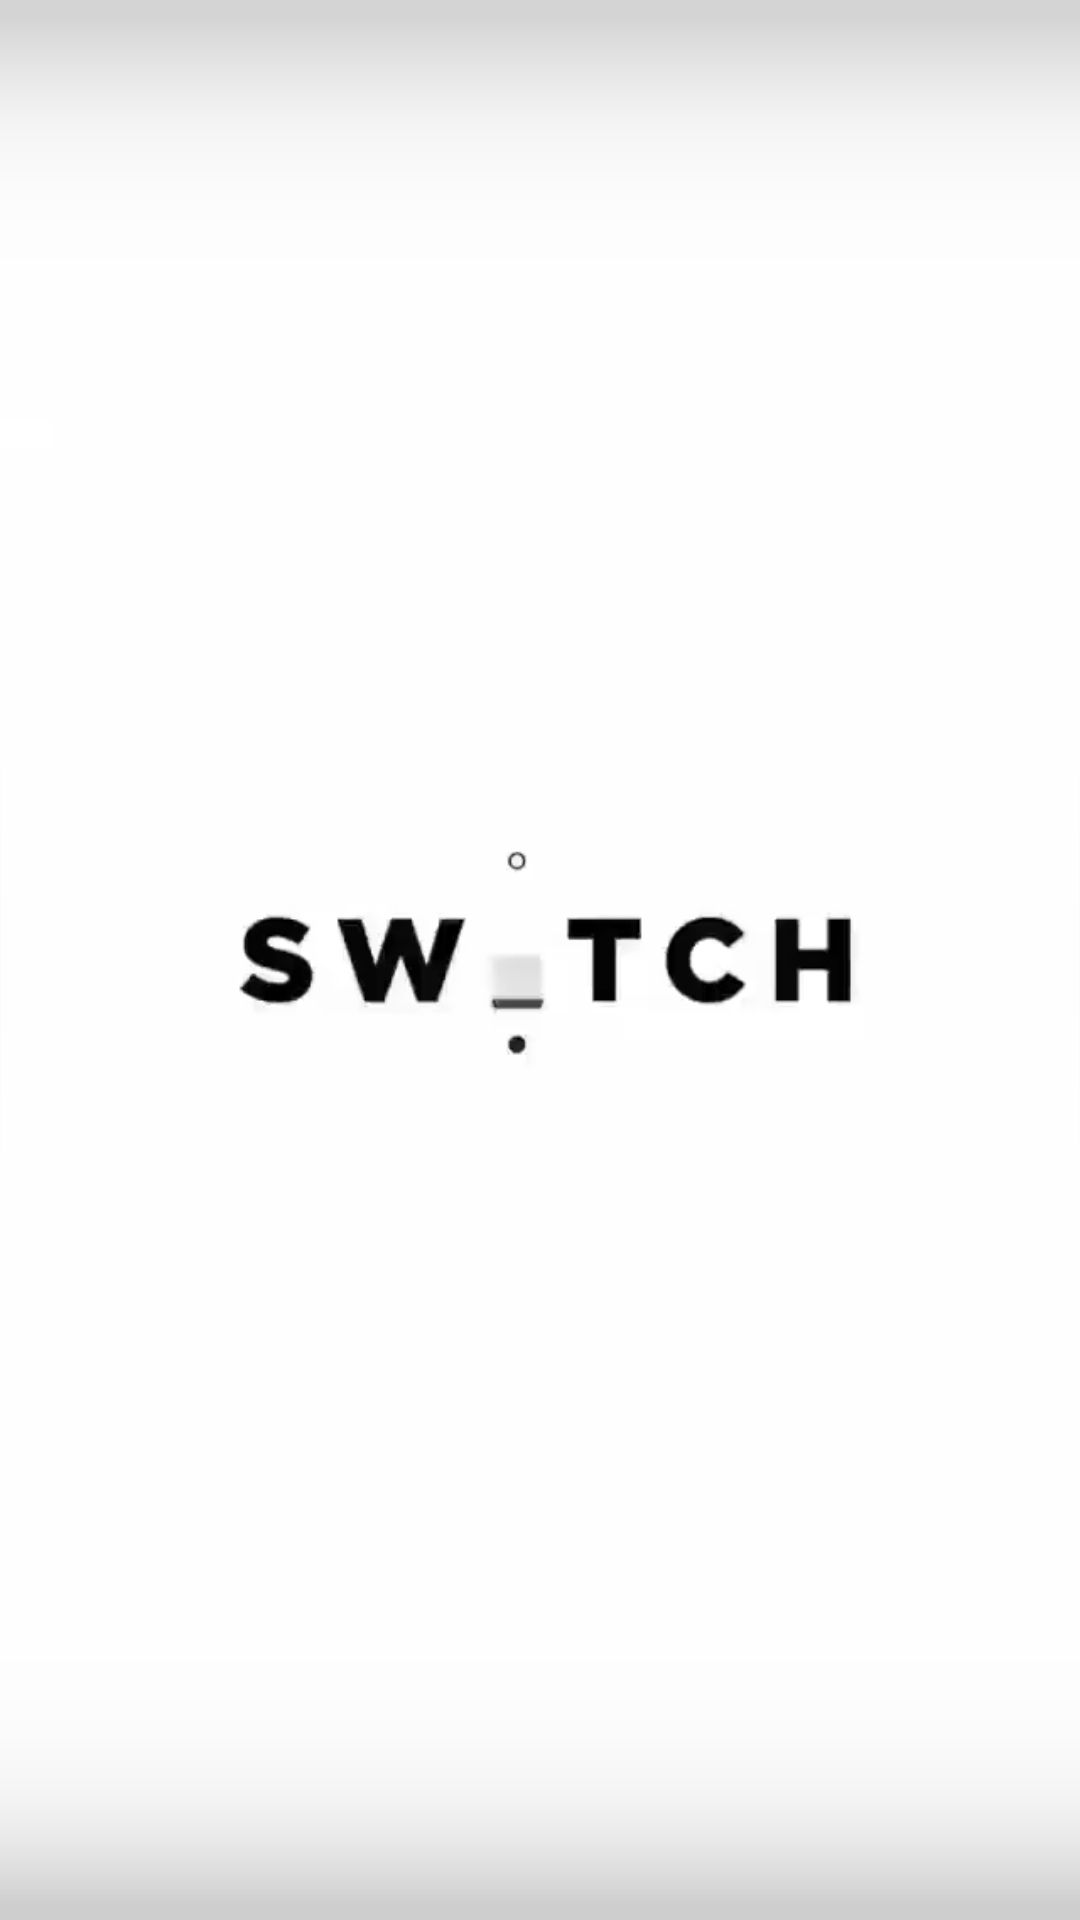 Switch Typography